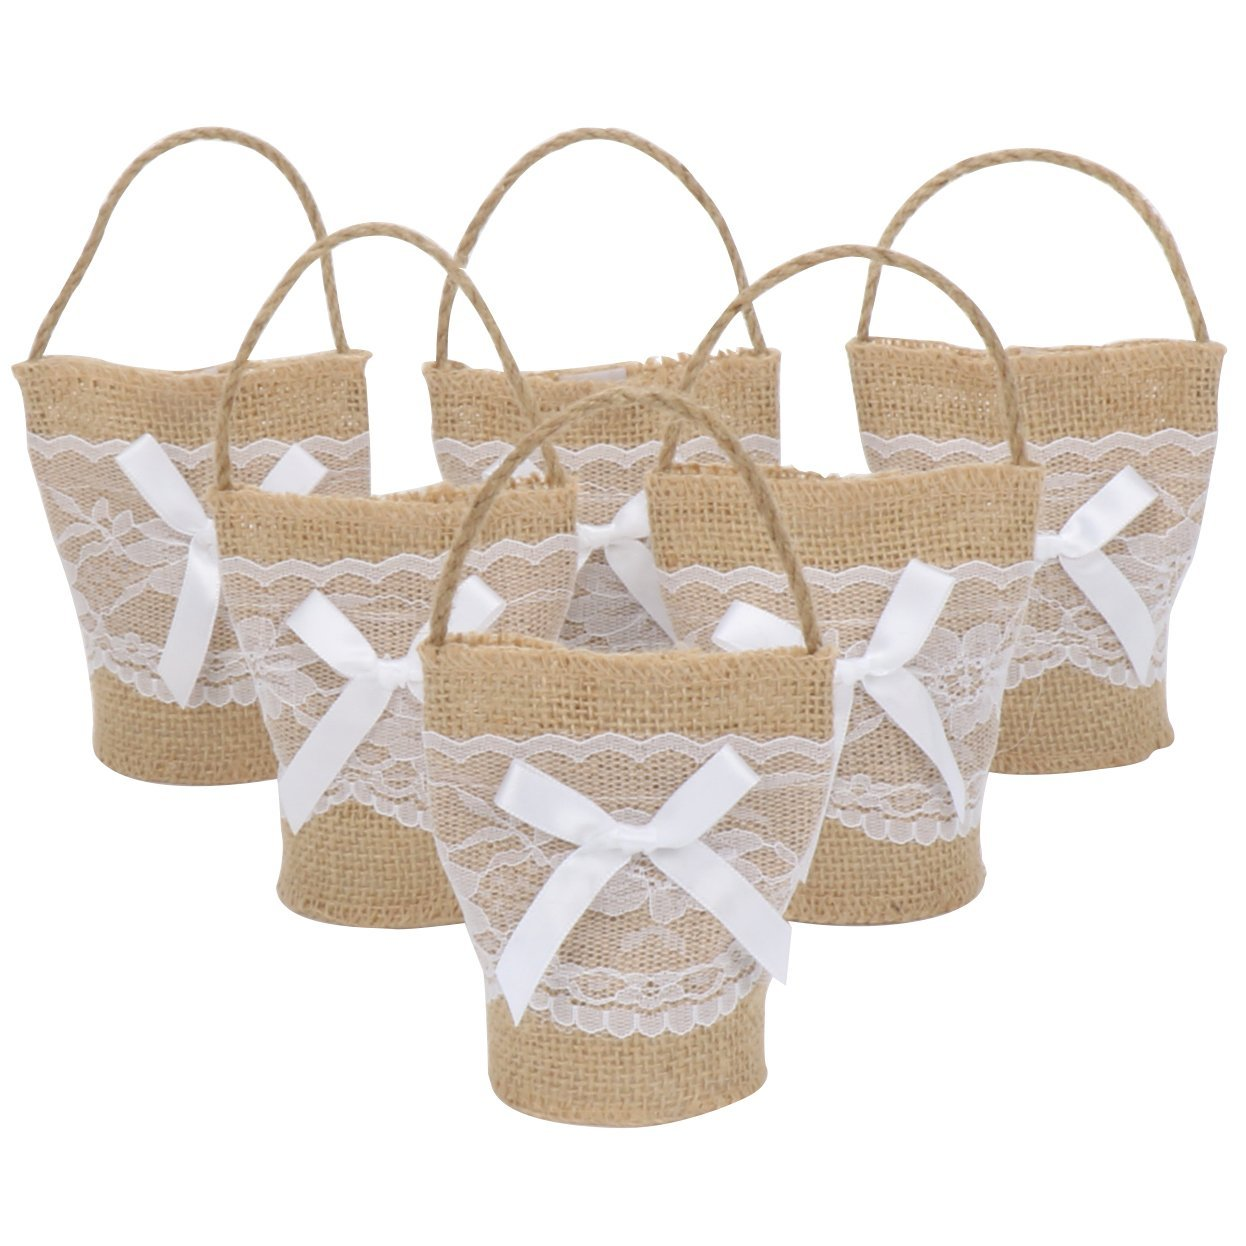 Cheap Burlap Bags Wedding, find Burlap Bags Wedding deals on line at ...